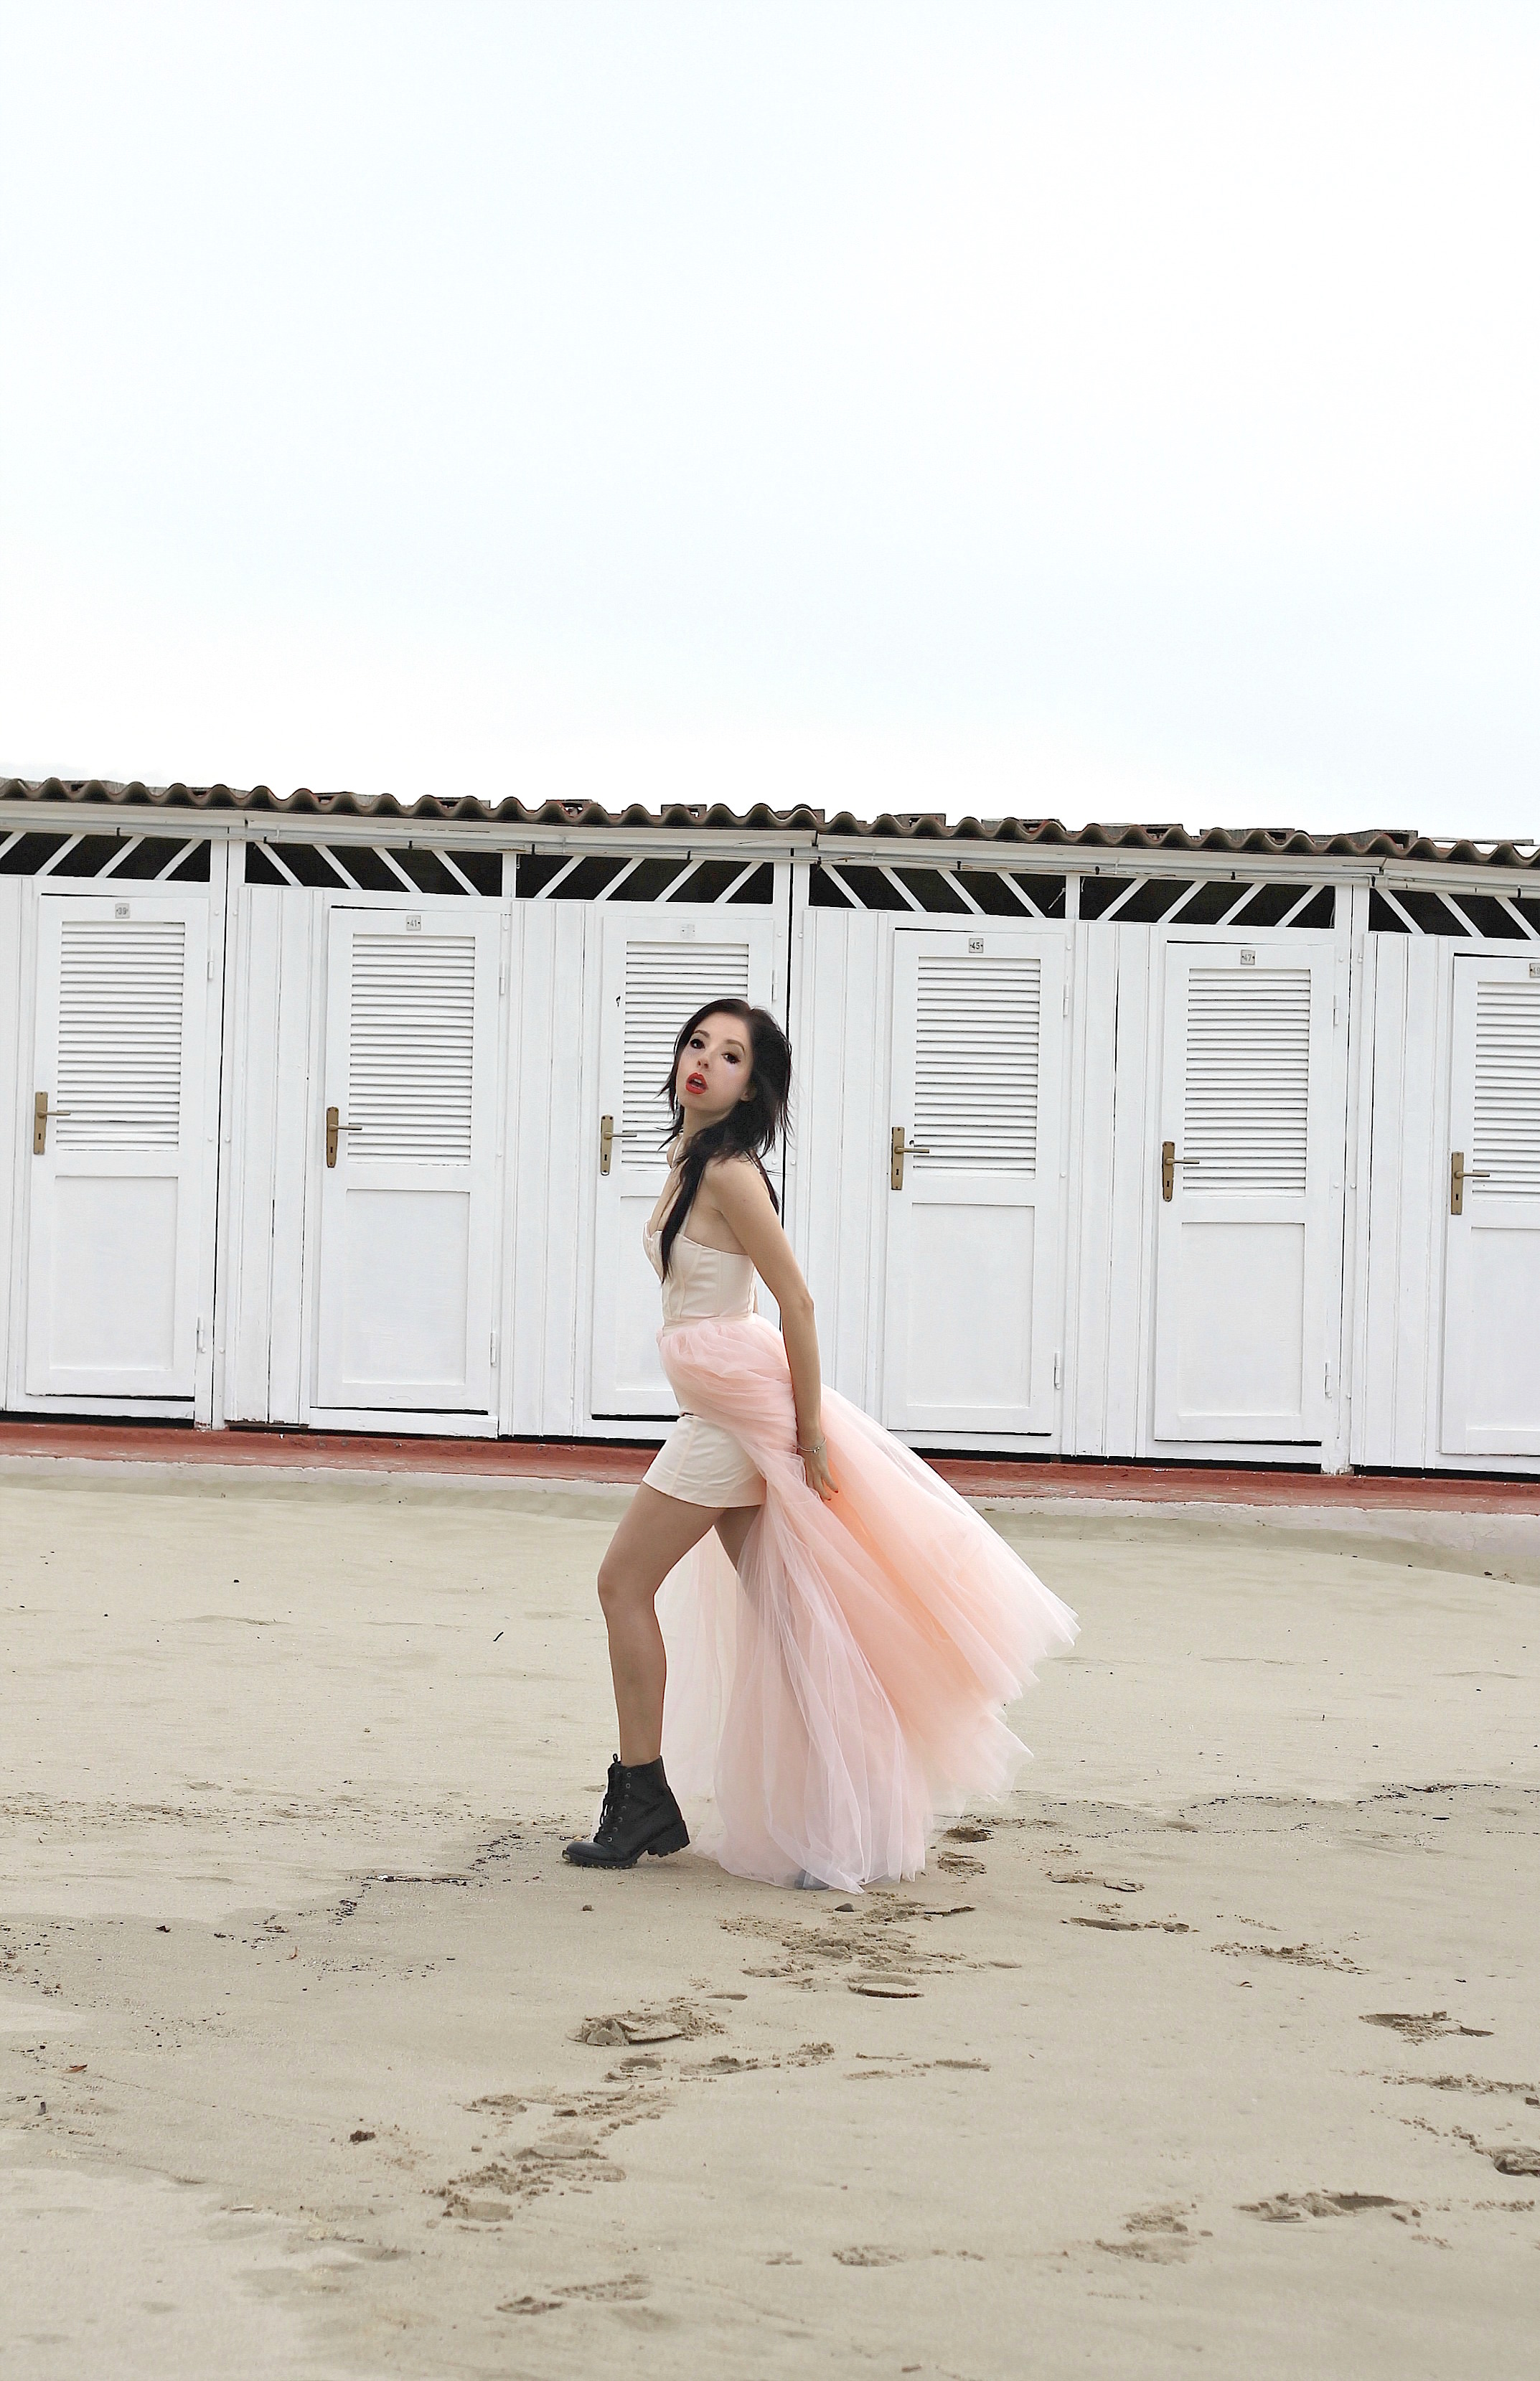 drogati di beauty, theladycracy.it, elisa bellino, fashion blog, fashion blogger 2016, fashion influencer, fashion blogger famose, fashion bloggers 2016, outfit blogger estate 2016, tendenze moda 2016, tulle pink dress, tulle abito rosa, fashion blogger italiane 2016, outfit blogger moda 2016, #lookls condé nast, fashion rental service trend 2016, fashion editorial, nastyl gal pink tulle dress,